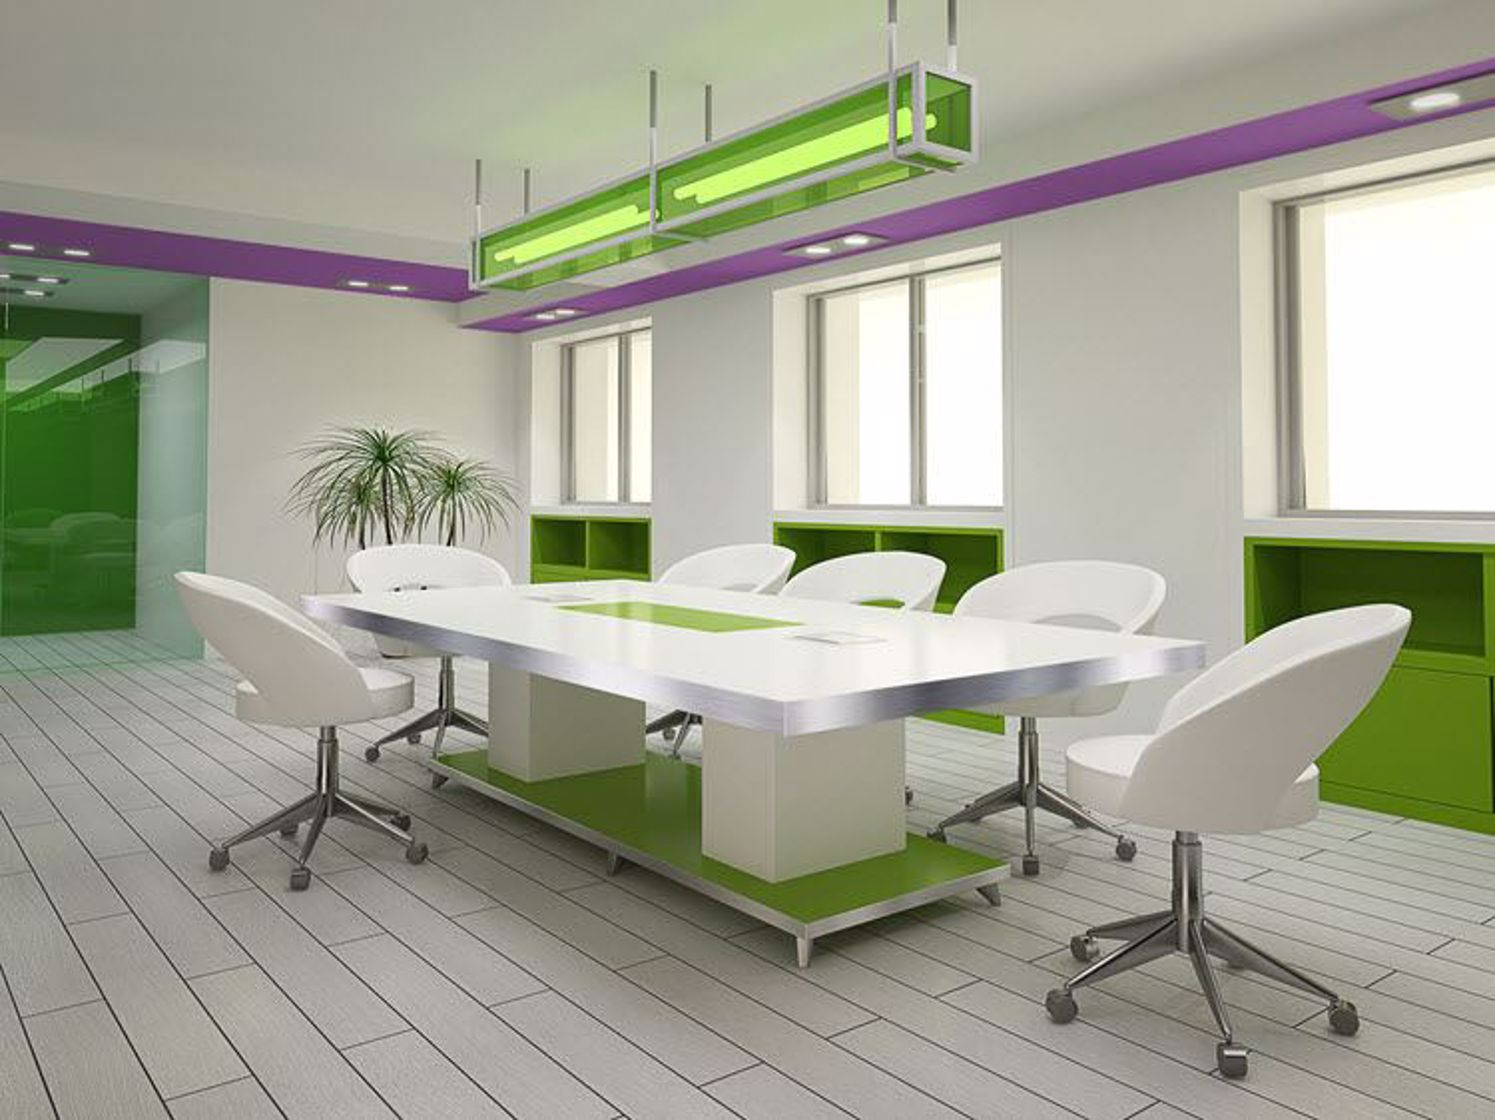 Modern Office Furniture - Why Custom Manufacturing is the New Design Trend